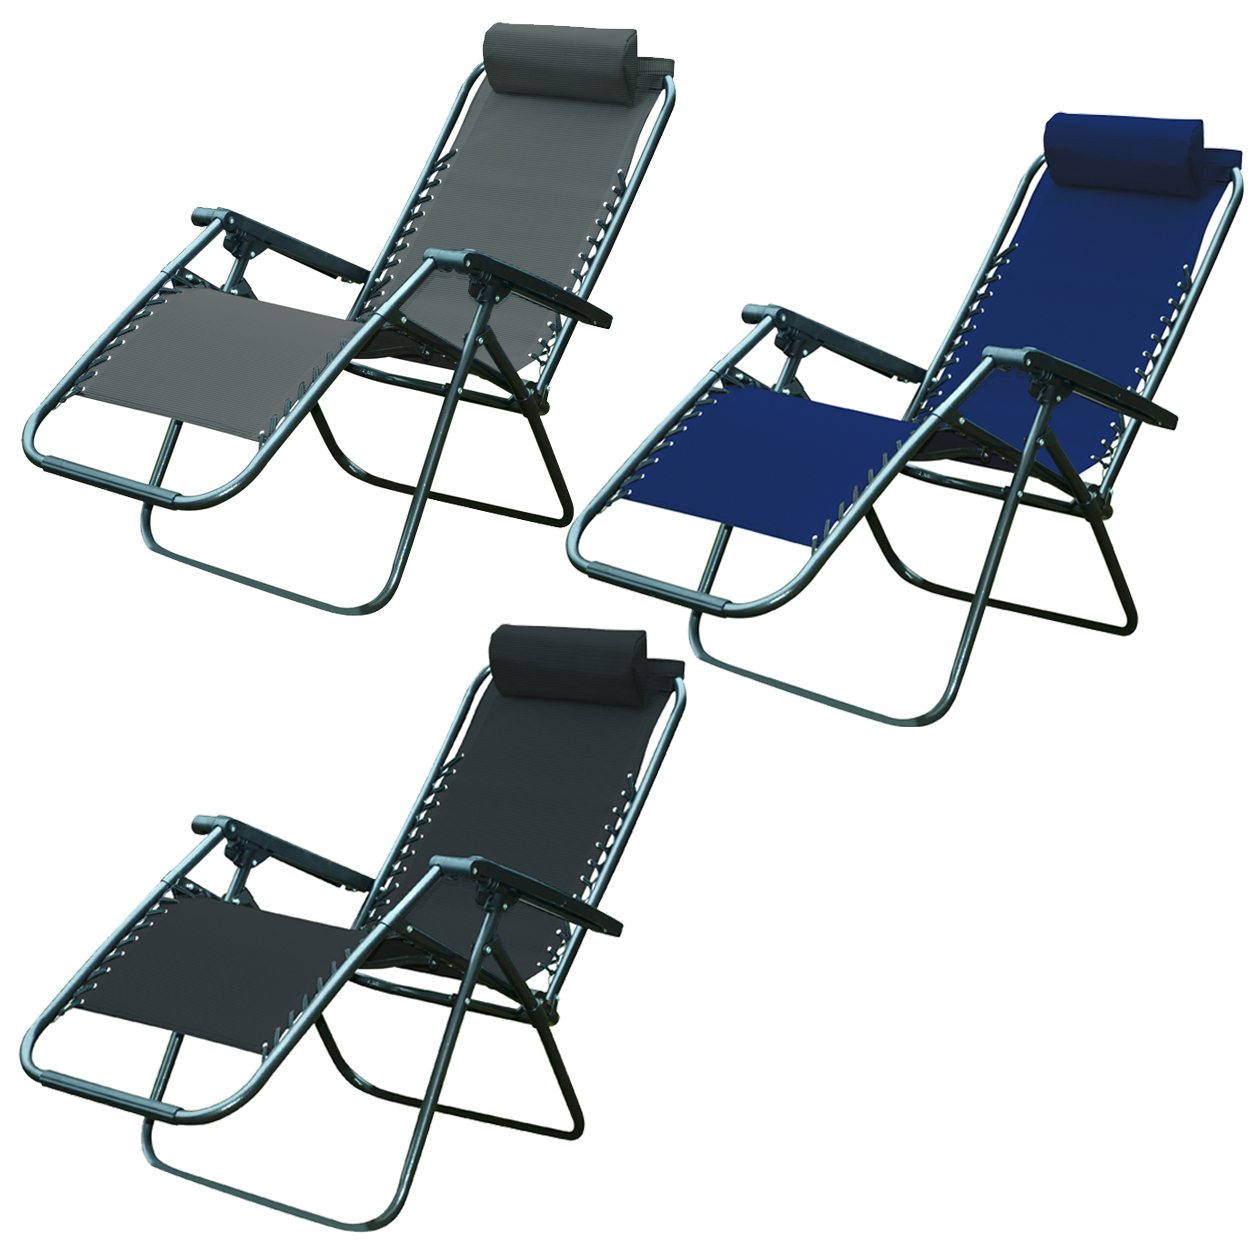 textoline header  sc 1 st  Daniel James Products & Zero Gravity Folding Reclining Sun Lounger Textoline Garden Chairs ... islam-shia.org